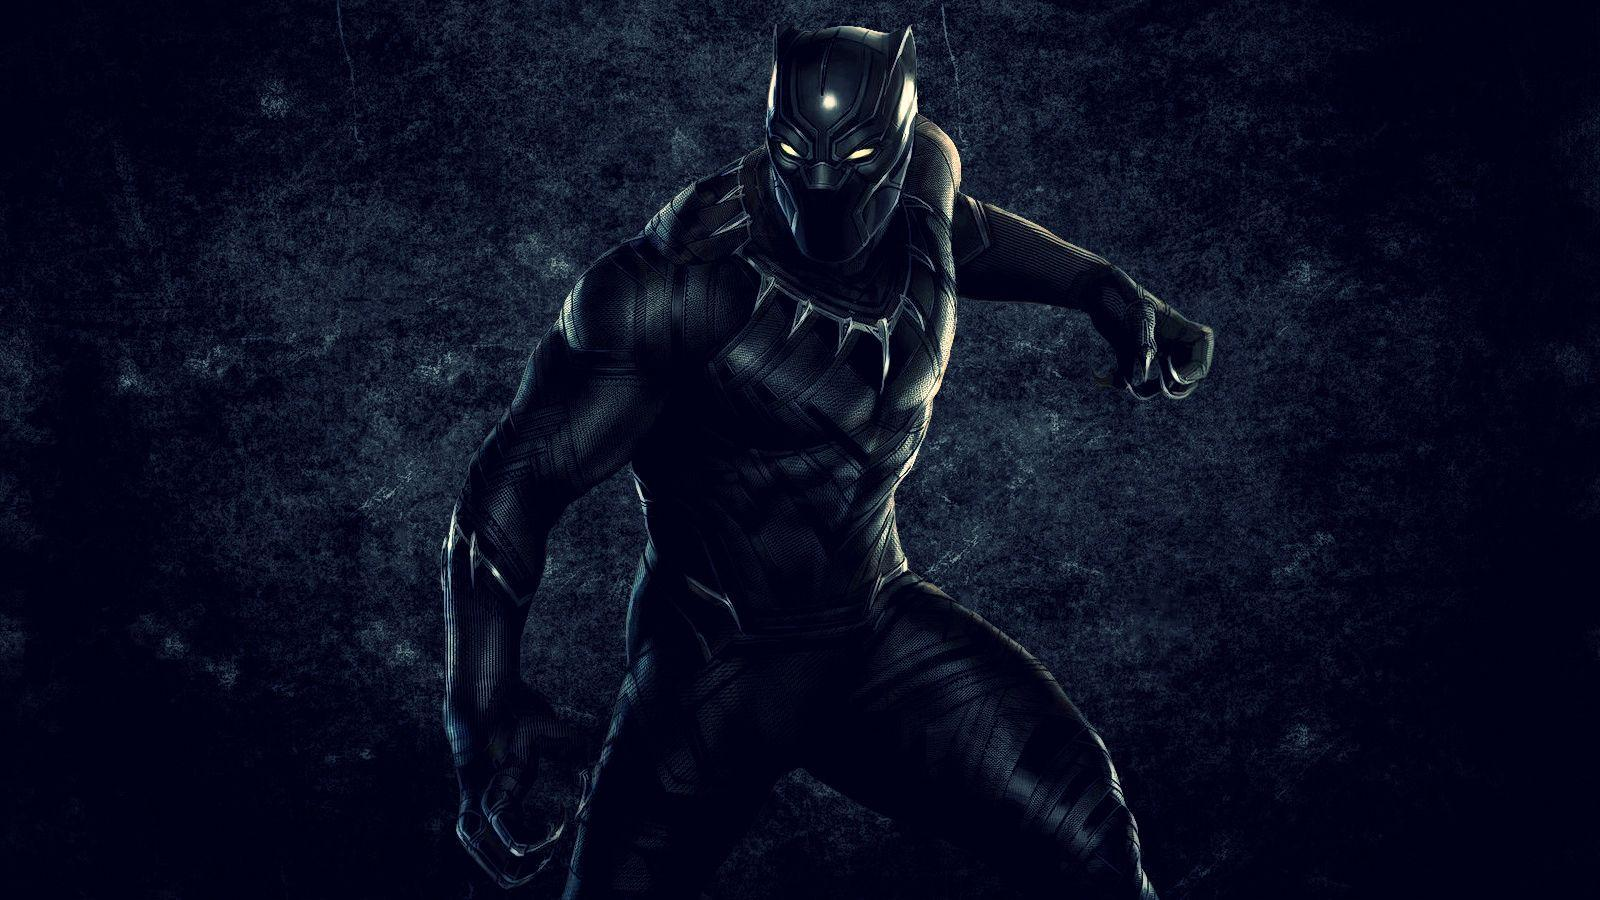 Black Panther Marvel Wallpapers 1600x900